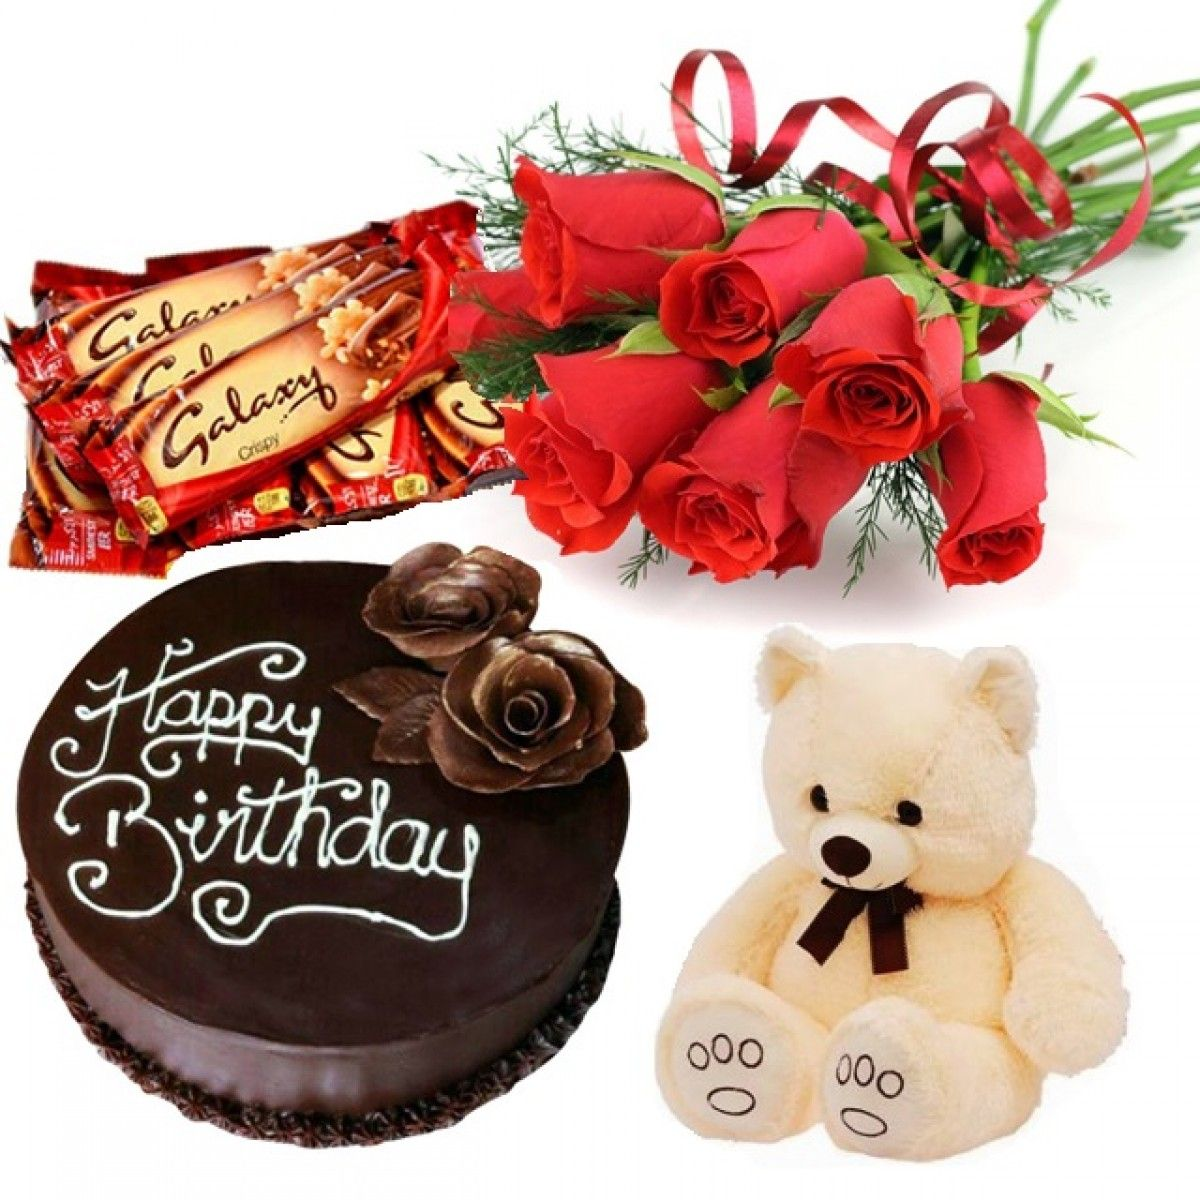 Birthday of your beloved who live in USA? Yeah?